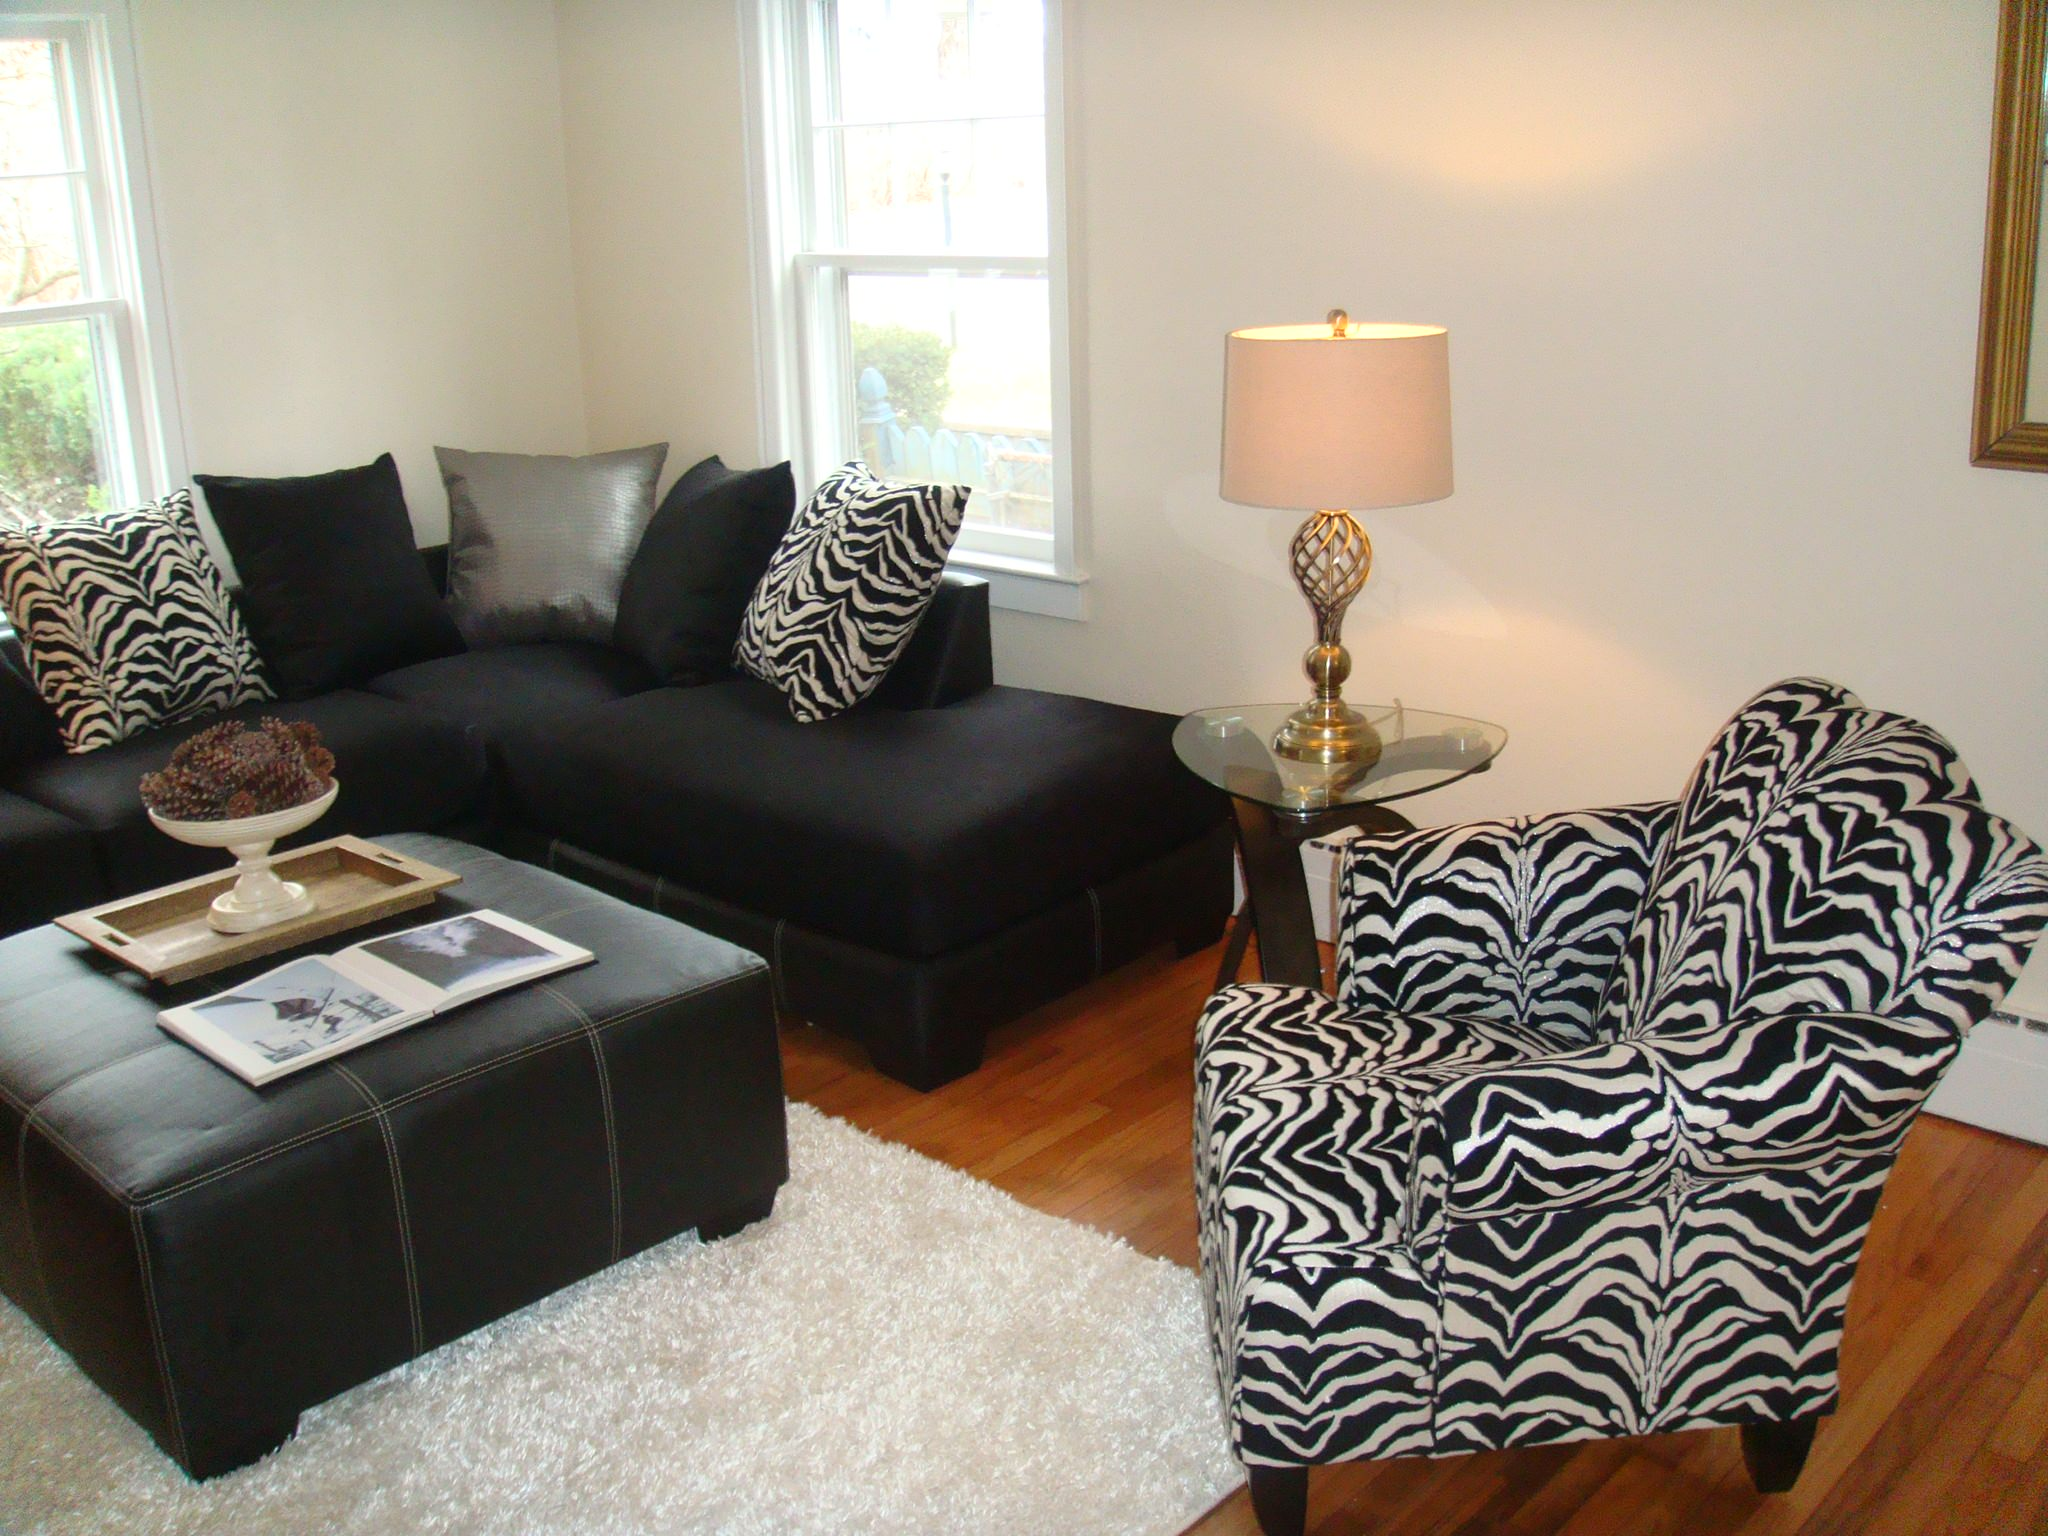 KINGSTON STAGING & REDESIGN